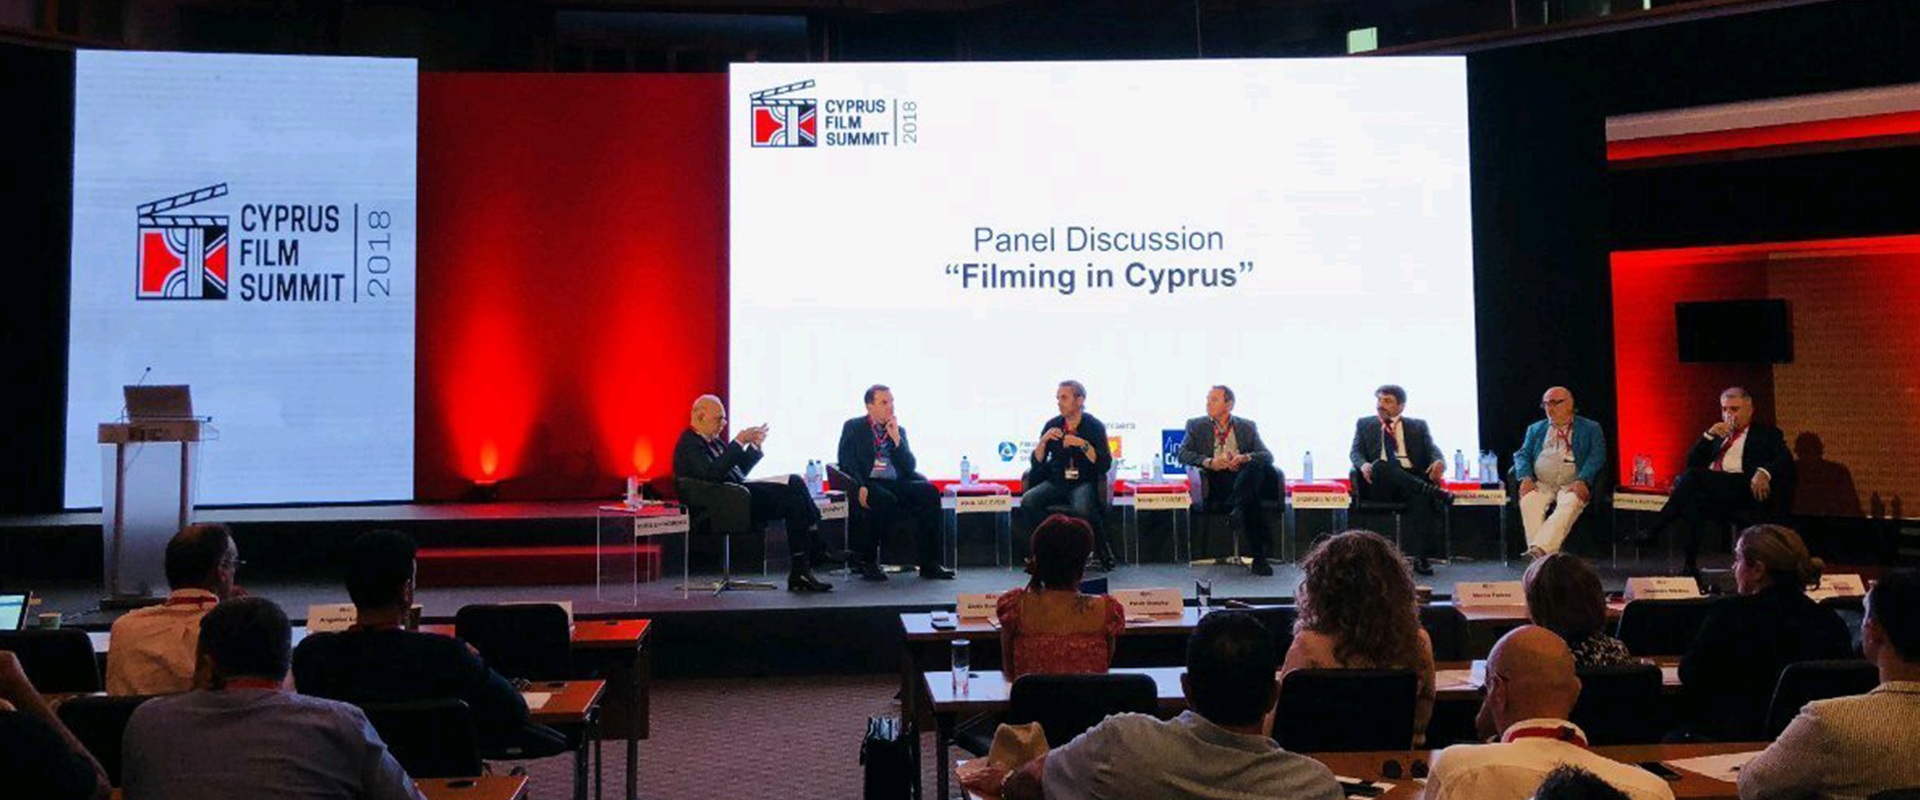 cyprus_film_summit.jpg